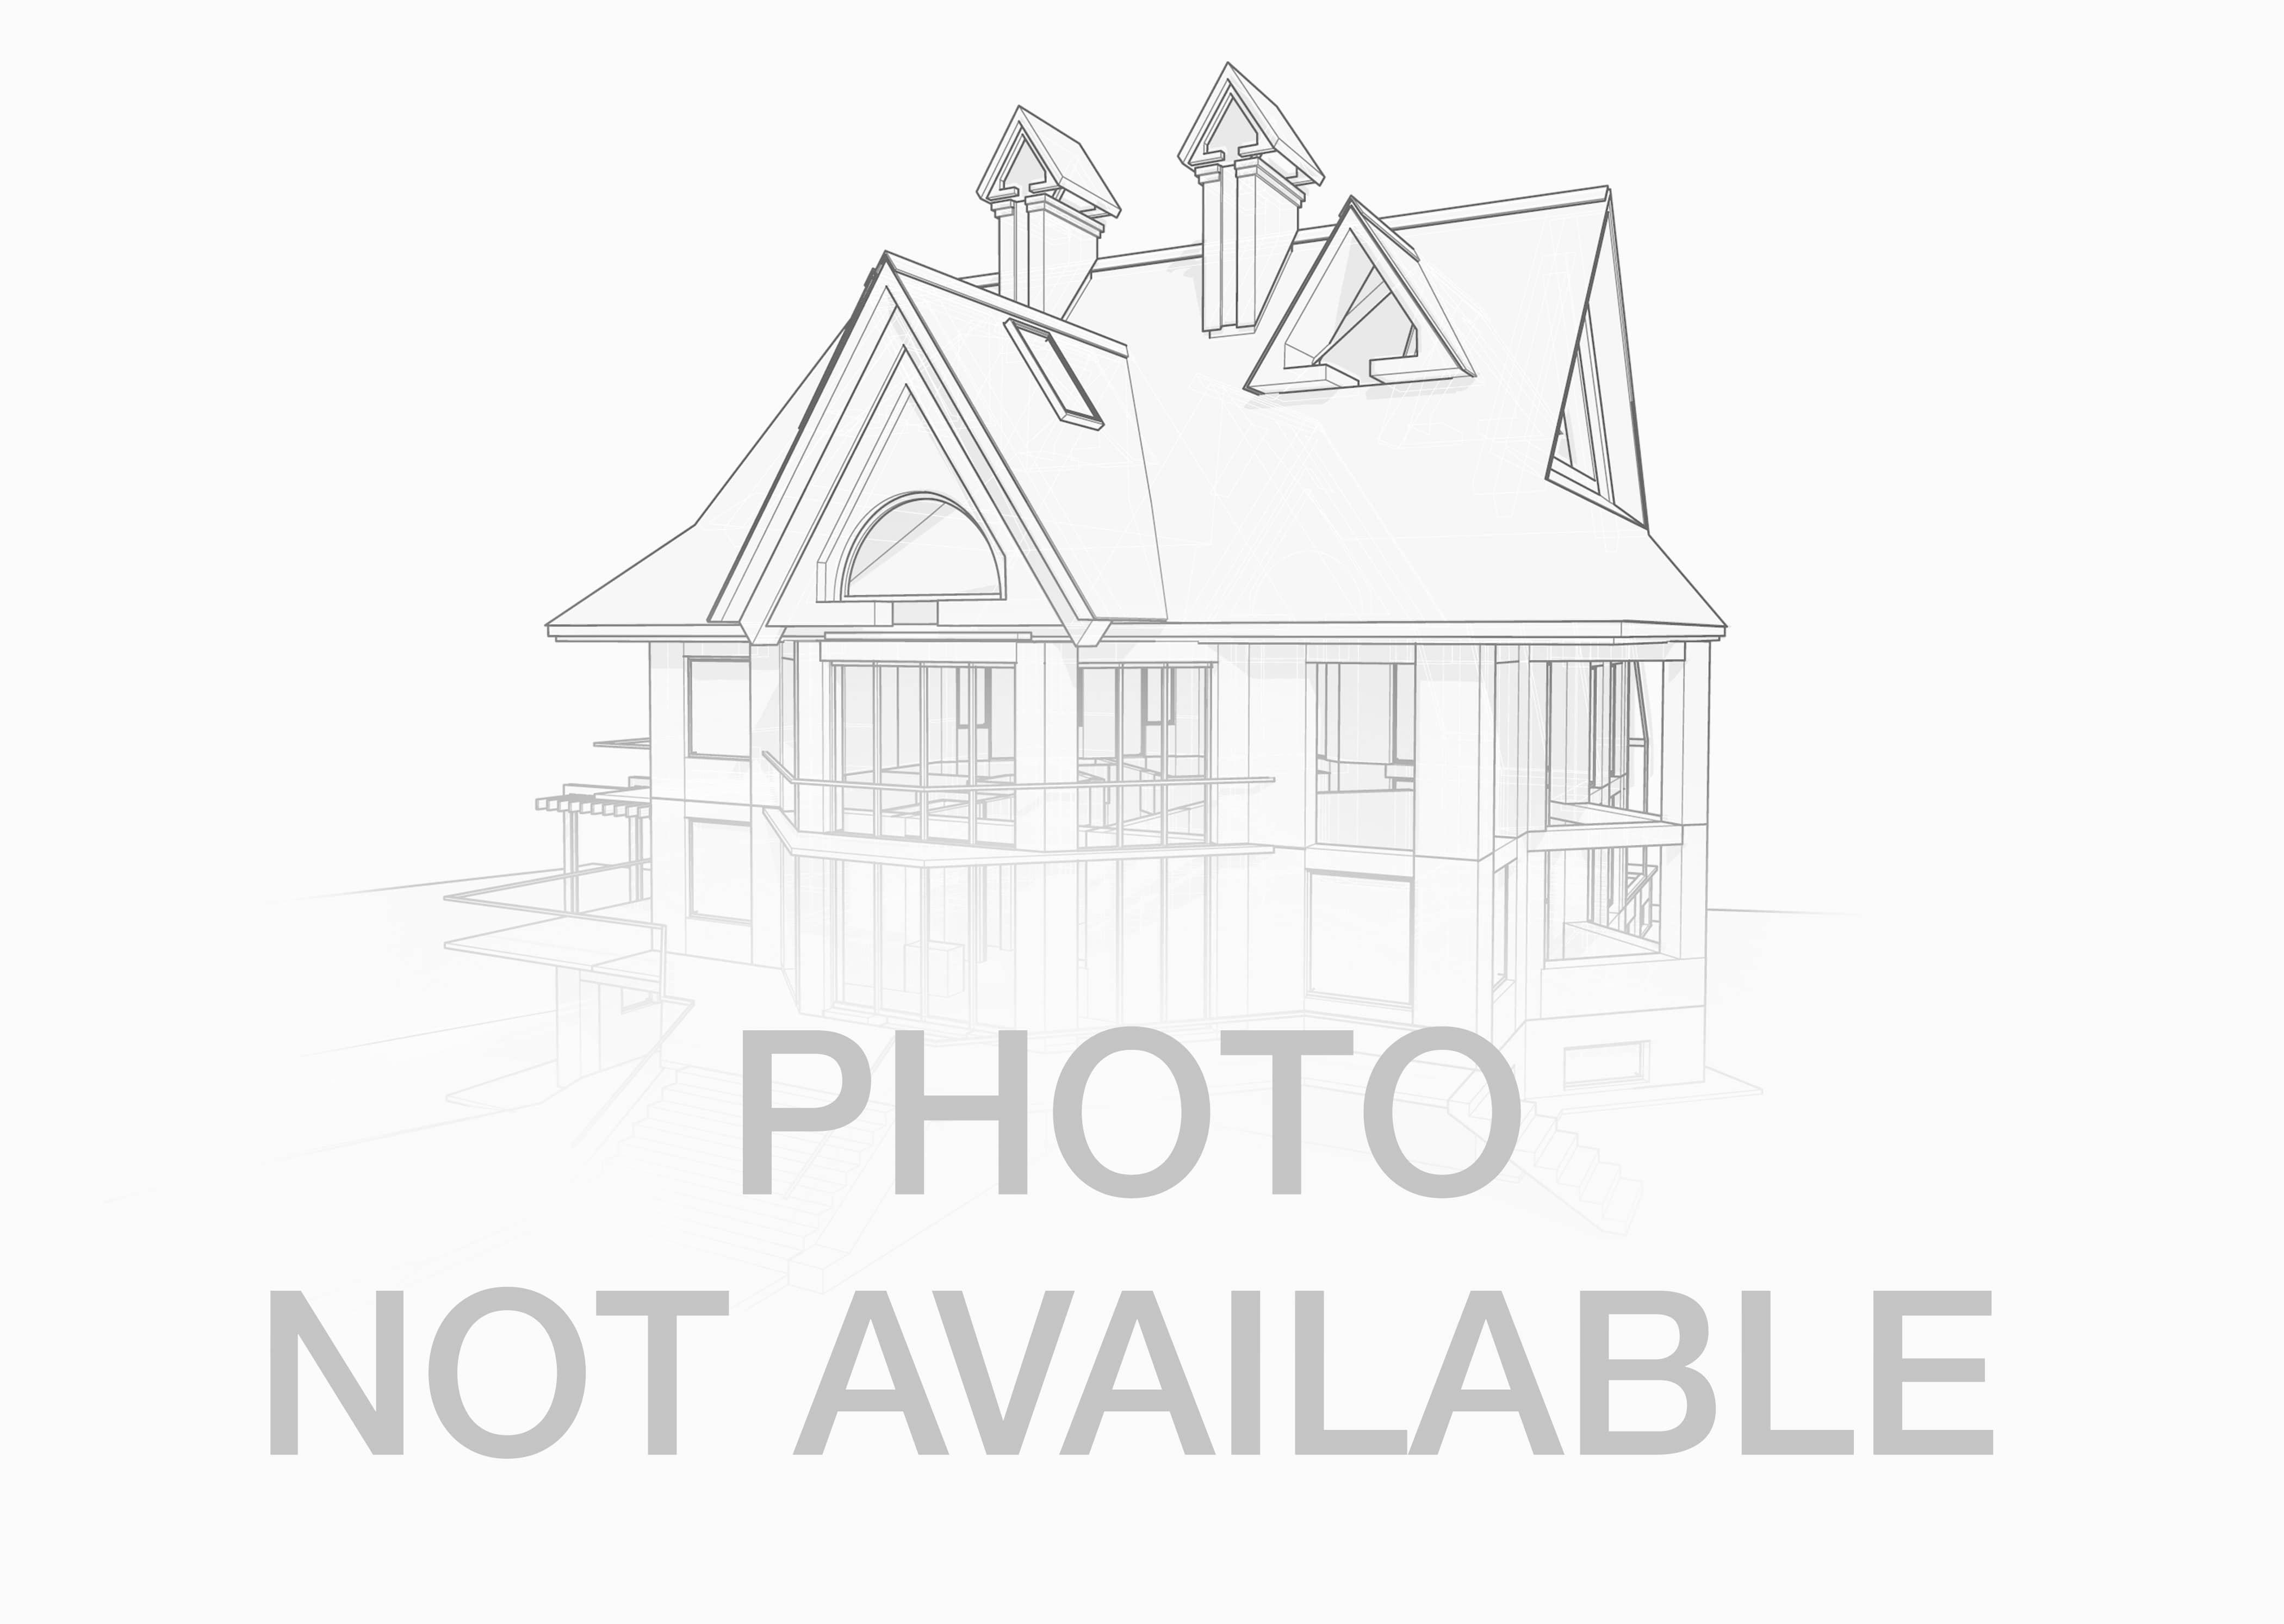 803 Lakeview Ave Northwest, Canton, Oh 44708 - MLS ID 4023738 on